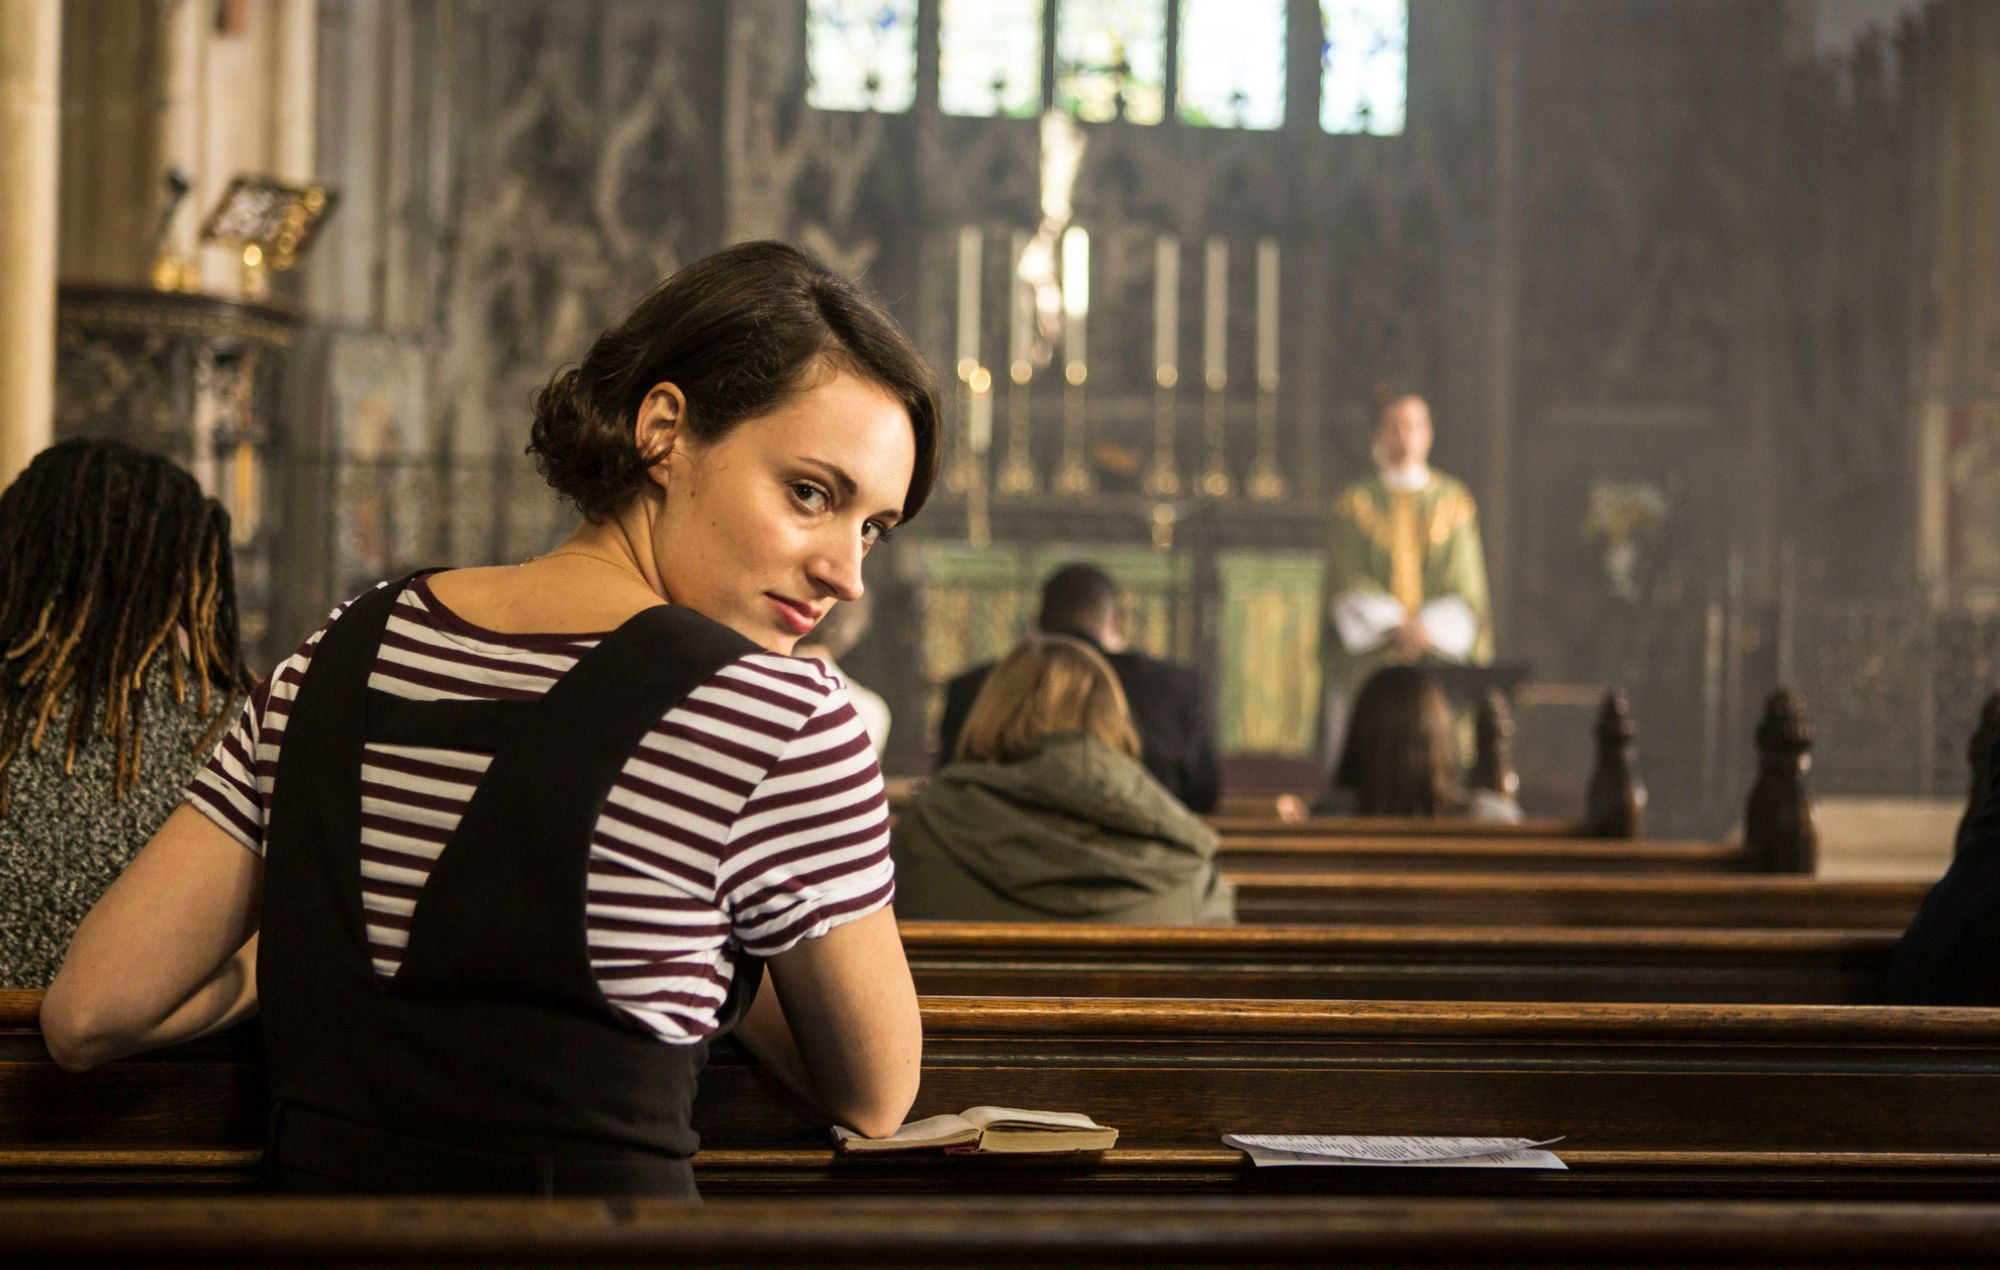 Image may contain: Fleabag hidden meanings, Fleabag, Female, Worship, Indoors, Sitting, Wood, Person, Human